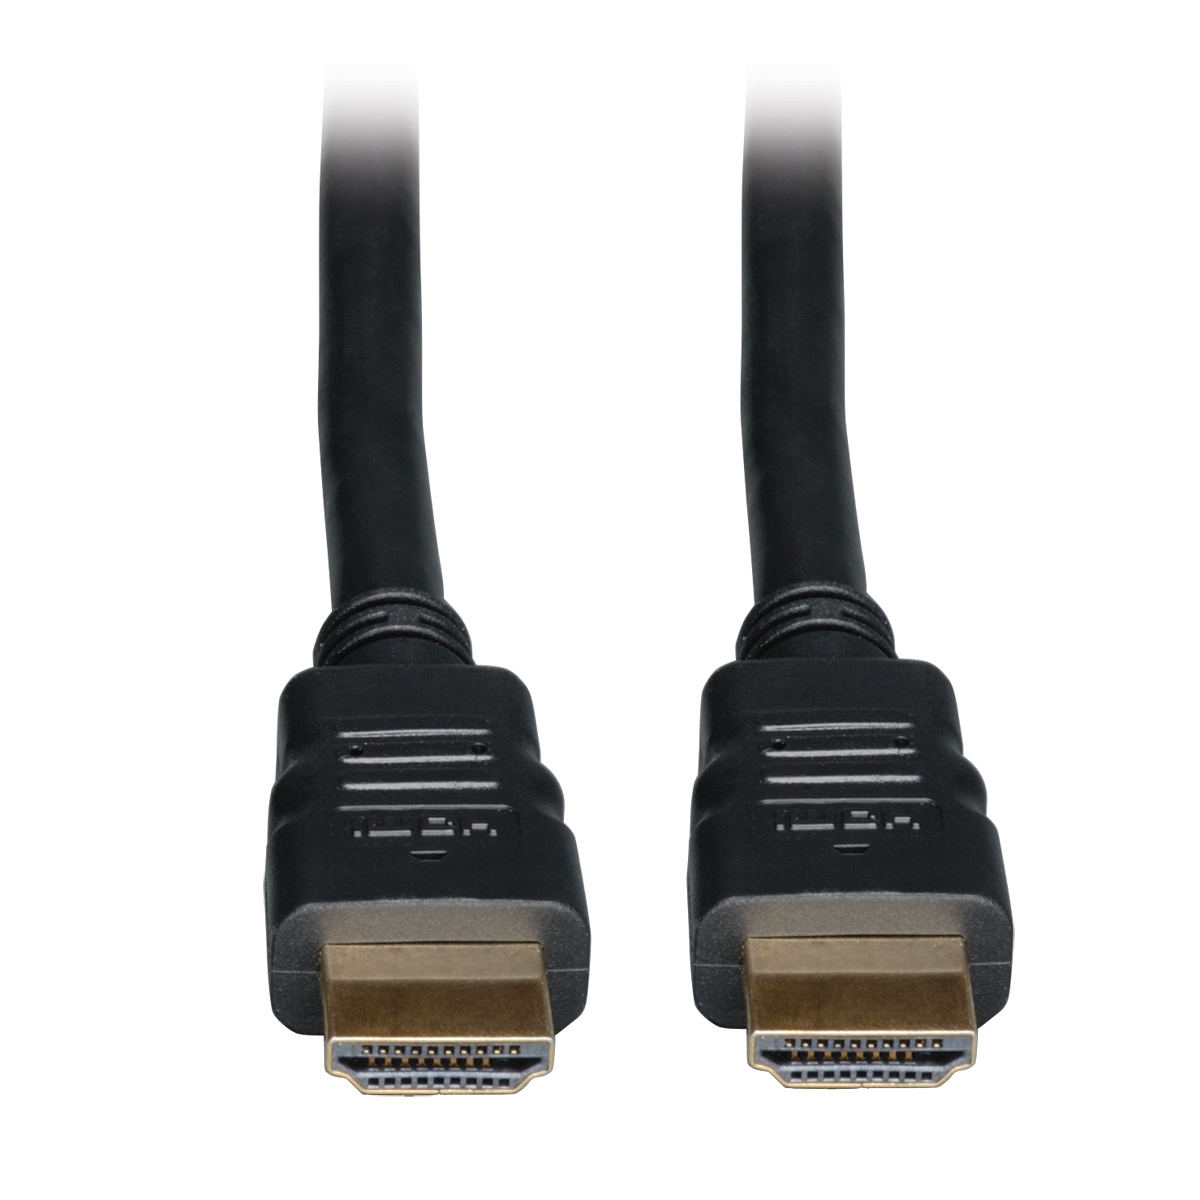 Lite High Speed HDMI Cable with Ethernet Digital Video with Audio (M/M) 3-ft - HDMI - 3 ft - 1 x HDMI Male Digital Audio/Video - 1 x HDMI Male Digital Audio/Video - Black